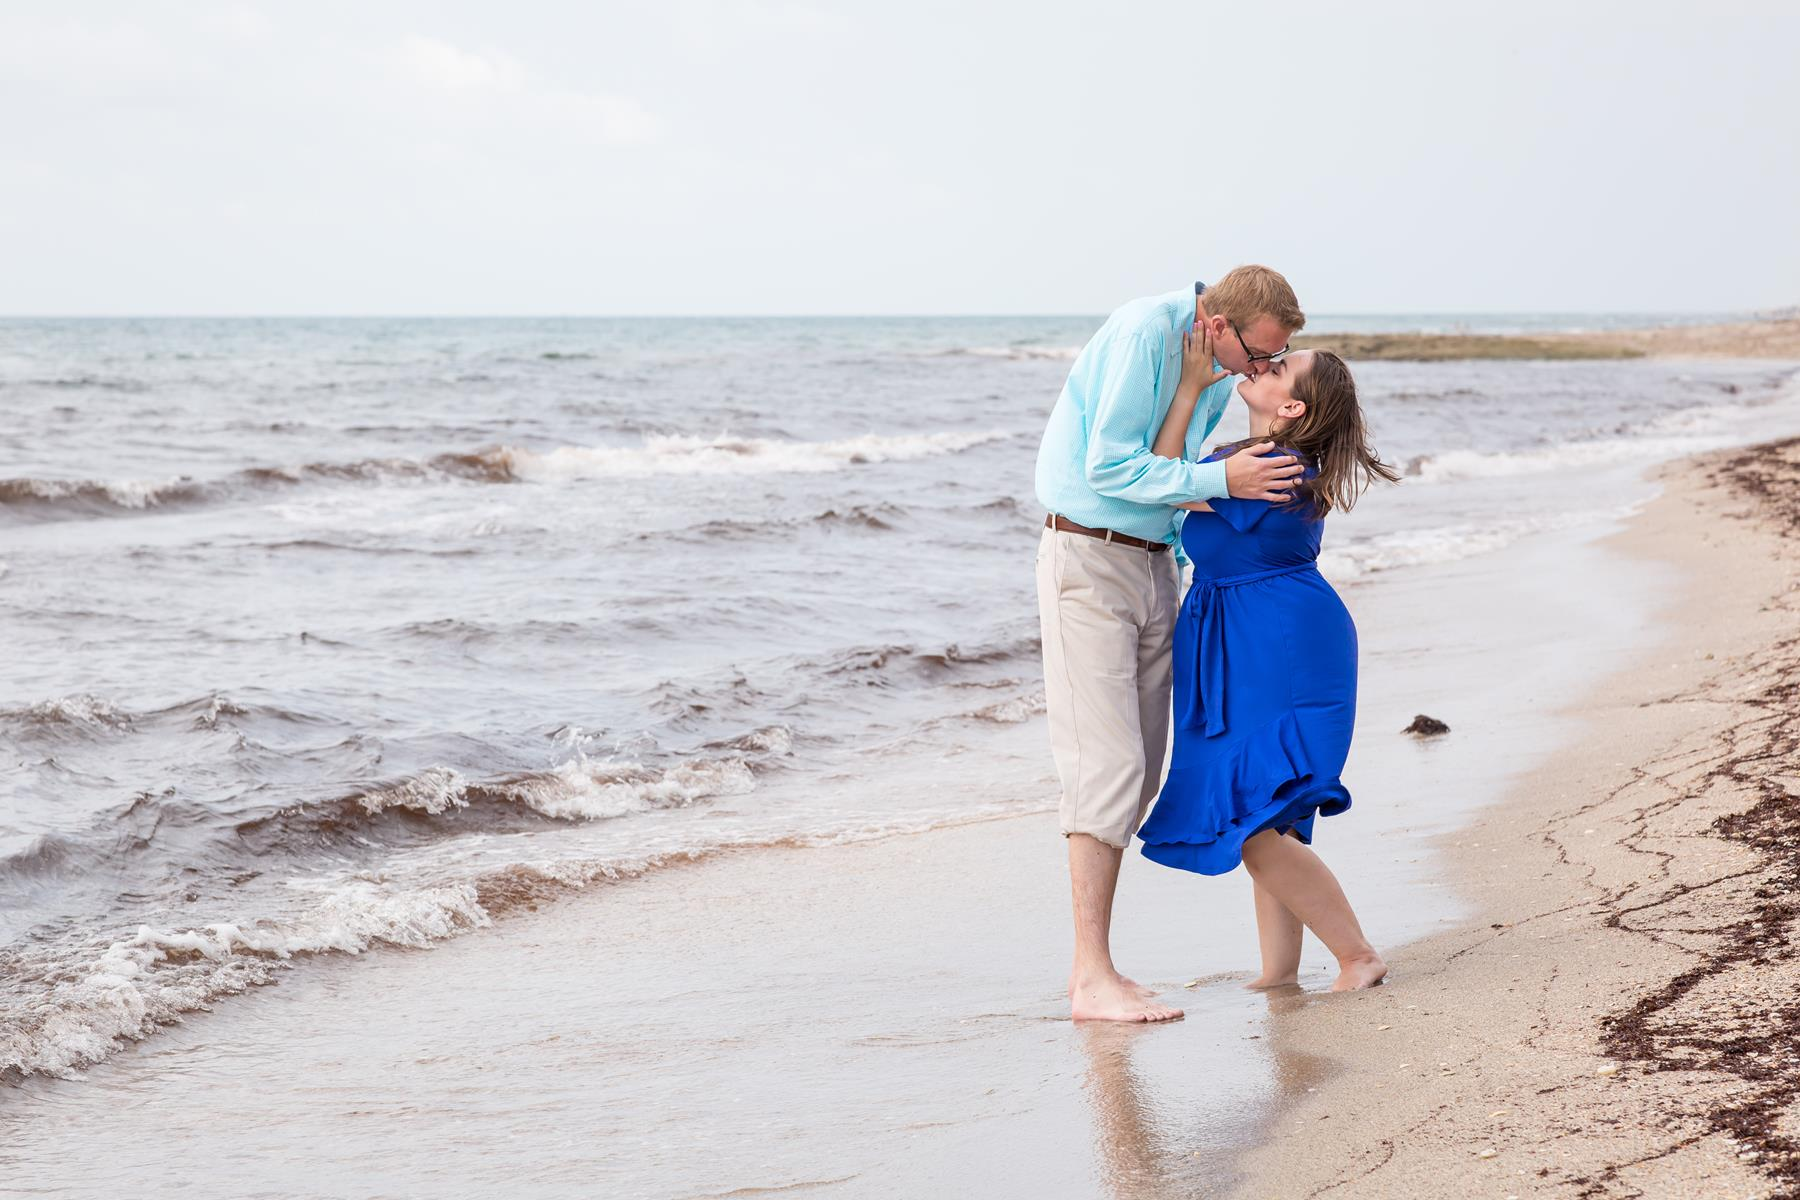 featured_franchesca-fread-photography-south-florida-and-destination-wedding-portrait-lifestyle-photographer09